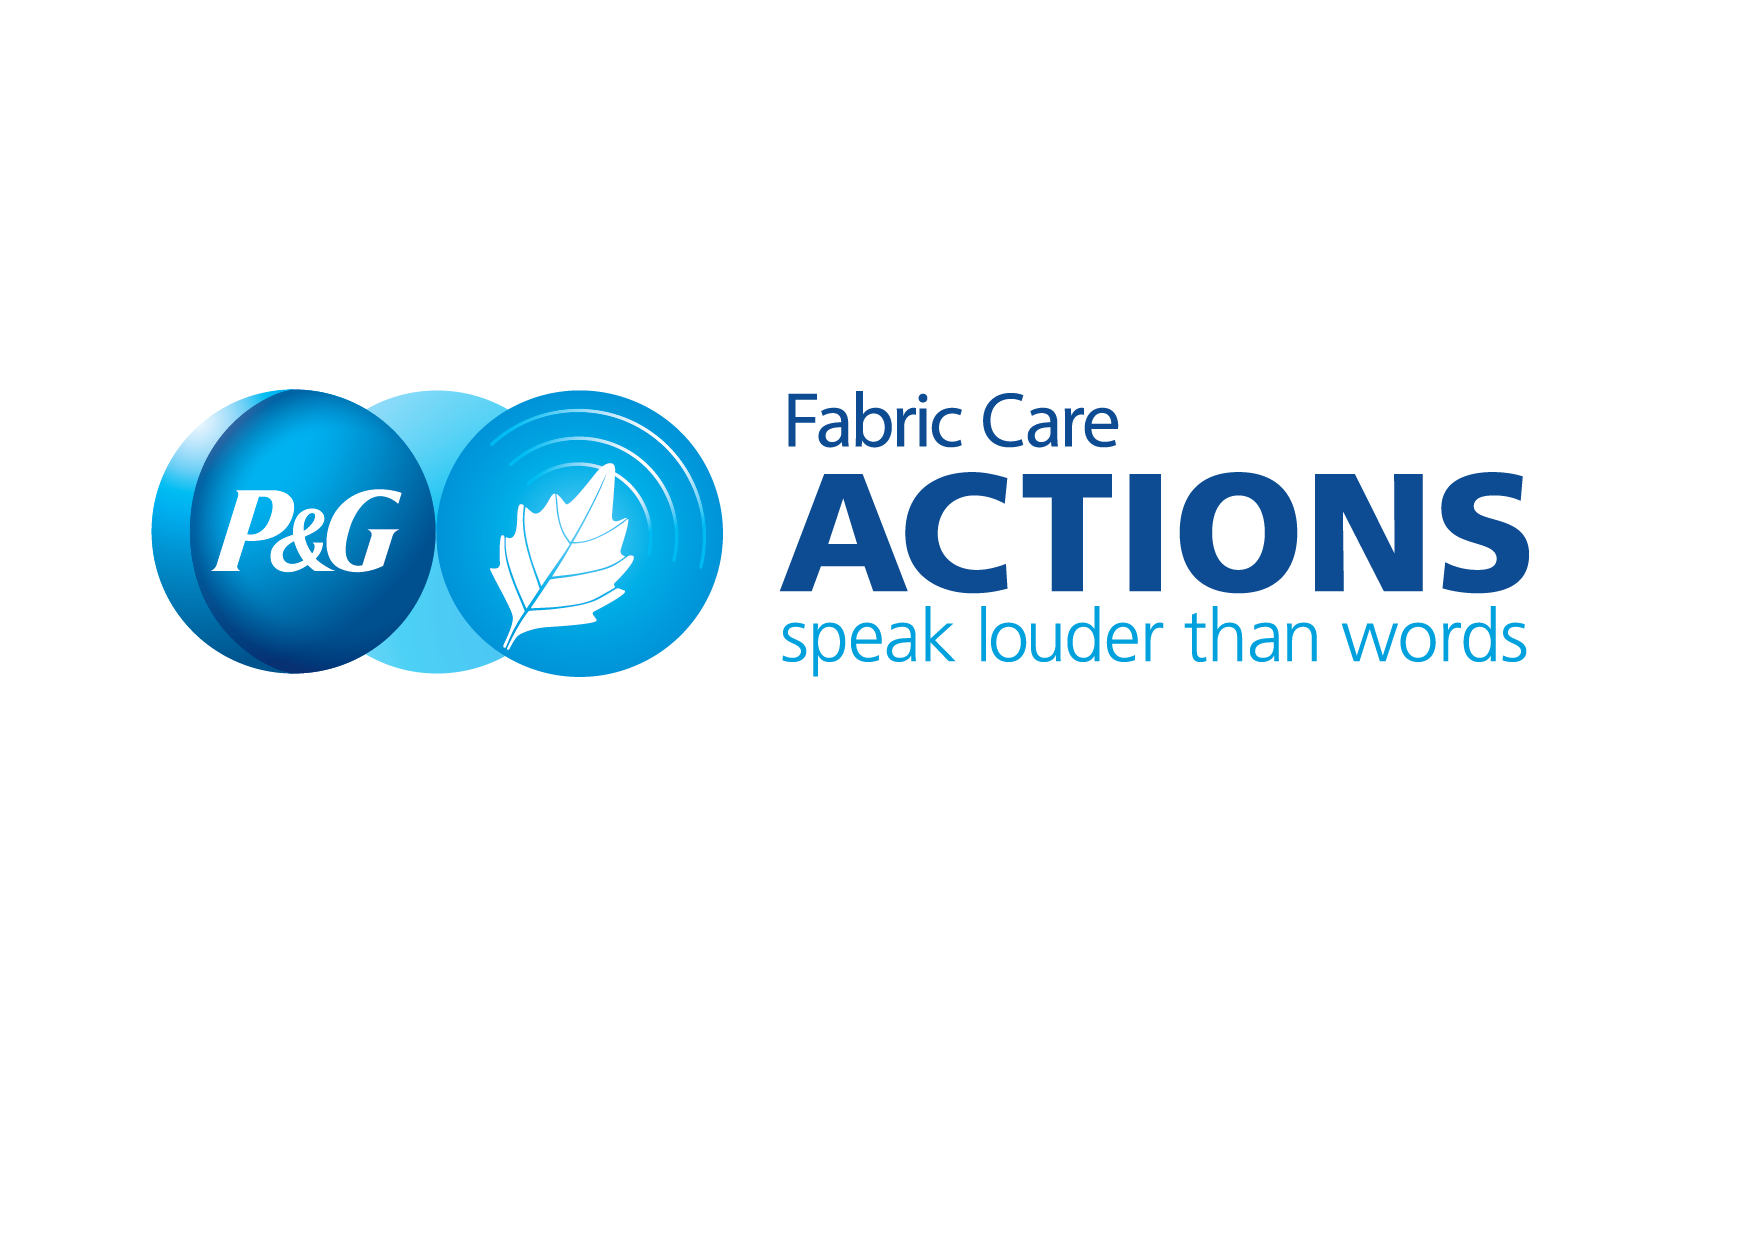 P&g png. Procter gamble fabric care